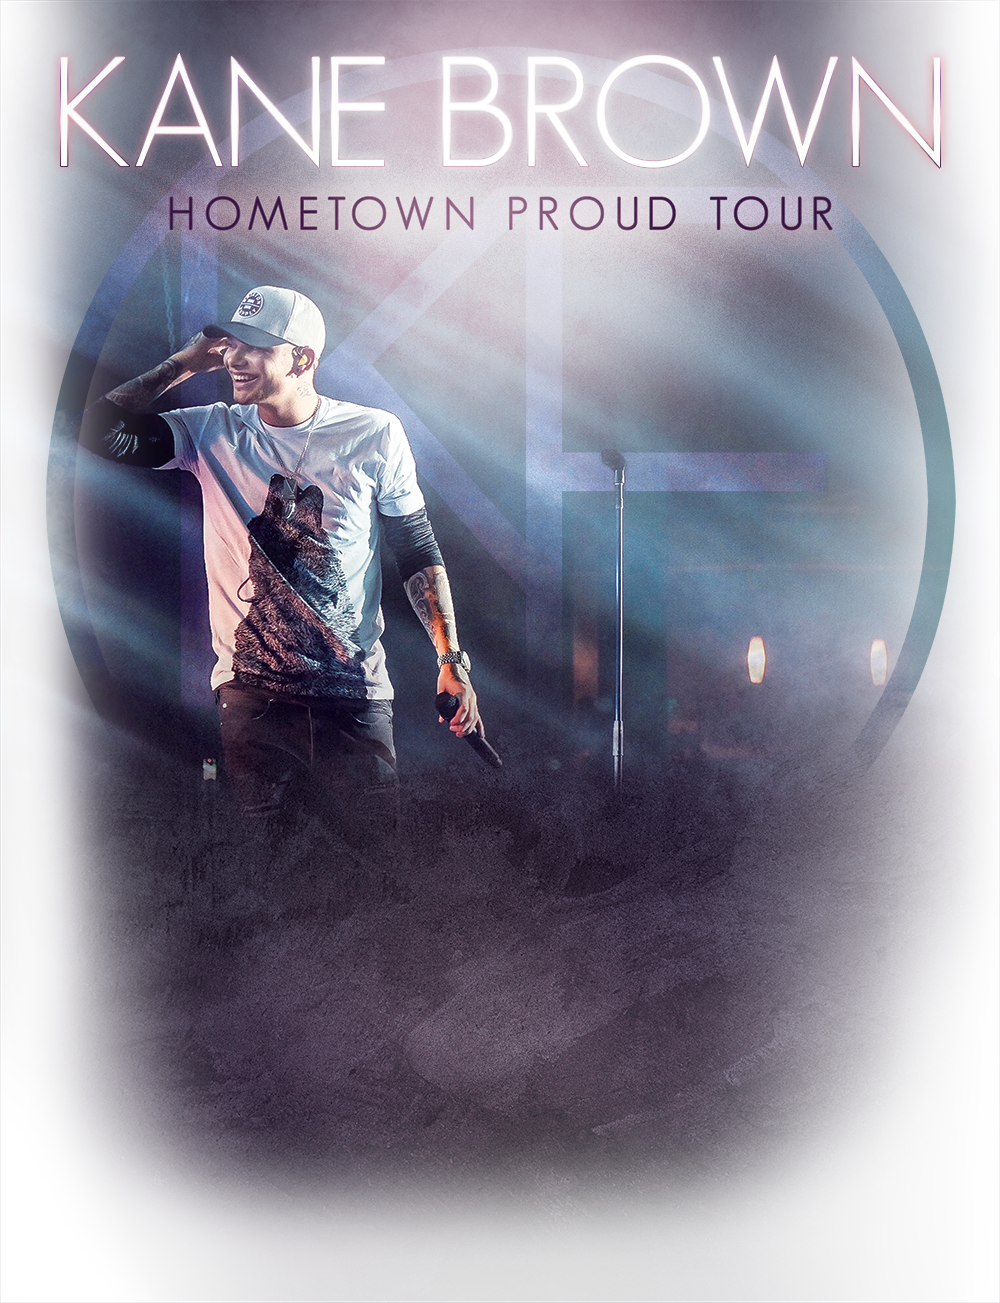 Kane Brown Hometown Proud Tour 2017